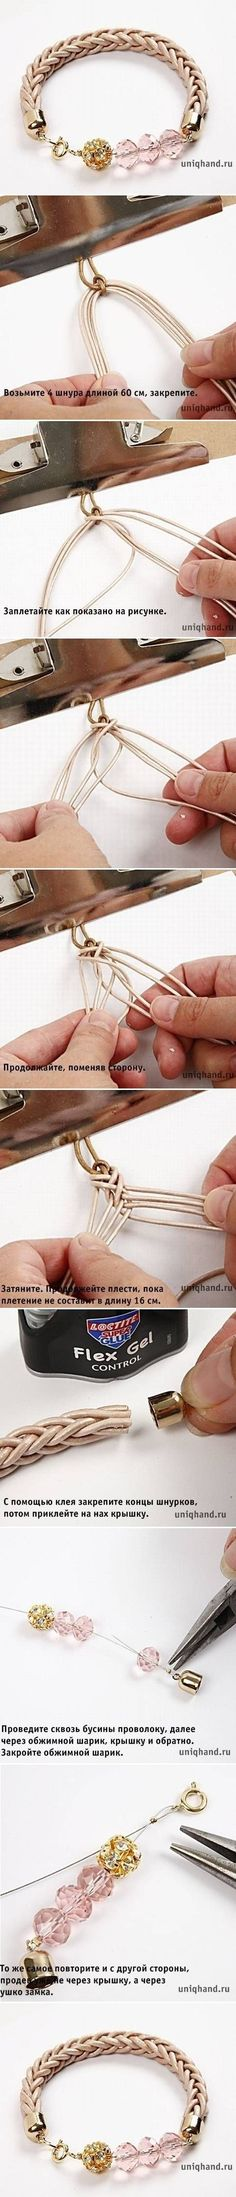 DIY Easy Simple Leather Bracelet DIY Projects